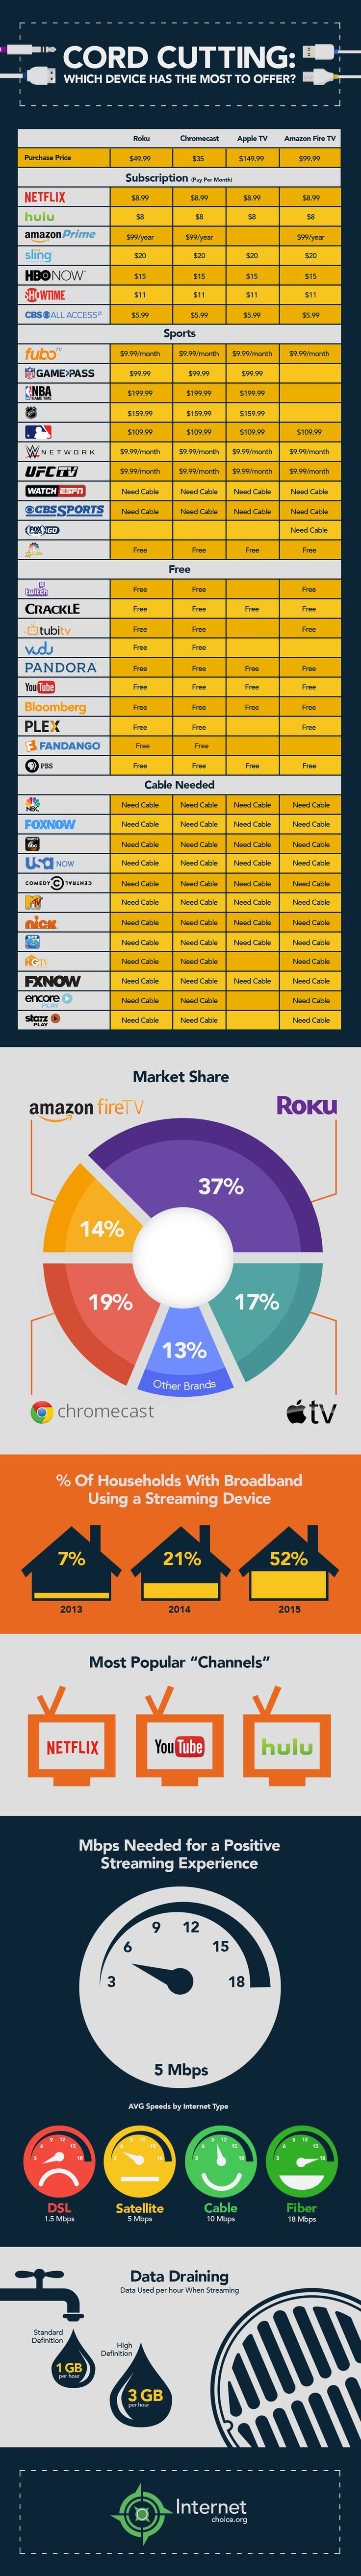 Media Steaming Devices Compared (Roku Apple TV Chromecast and Amazon)-Watch Free Latest Movies Online on Moive365.to